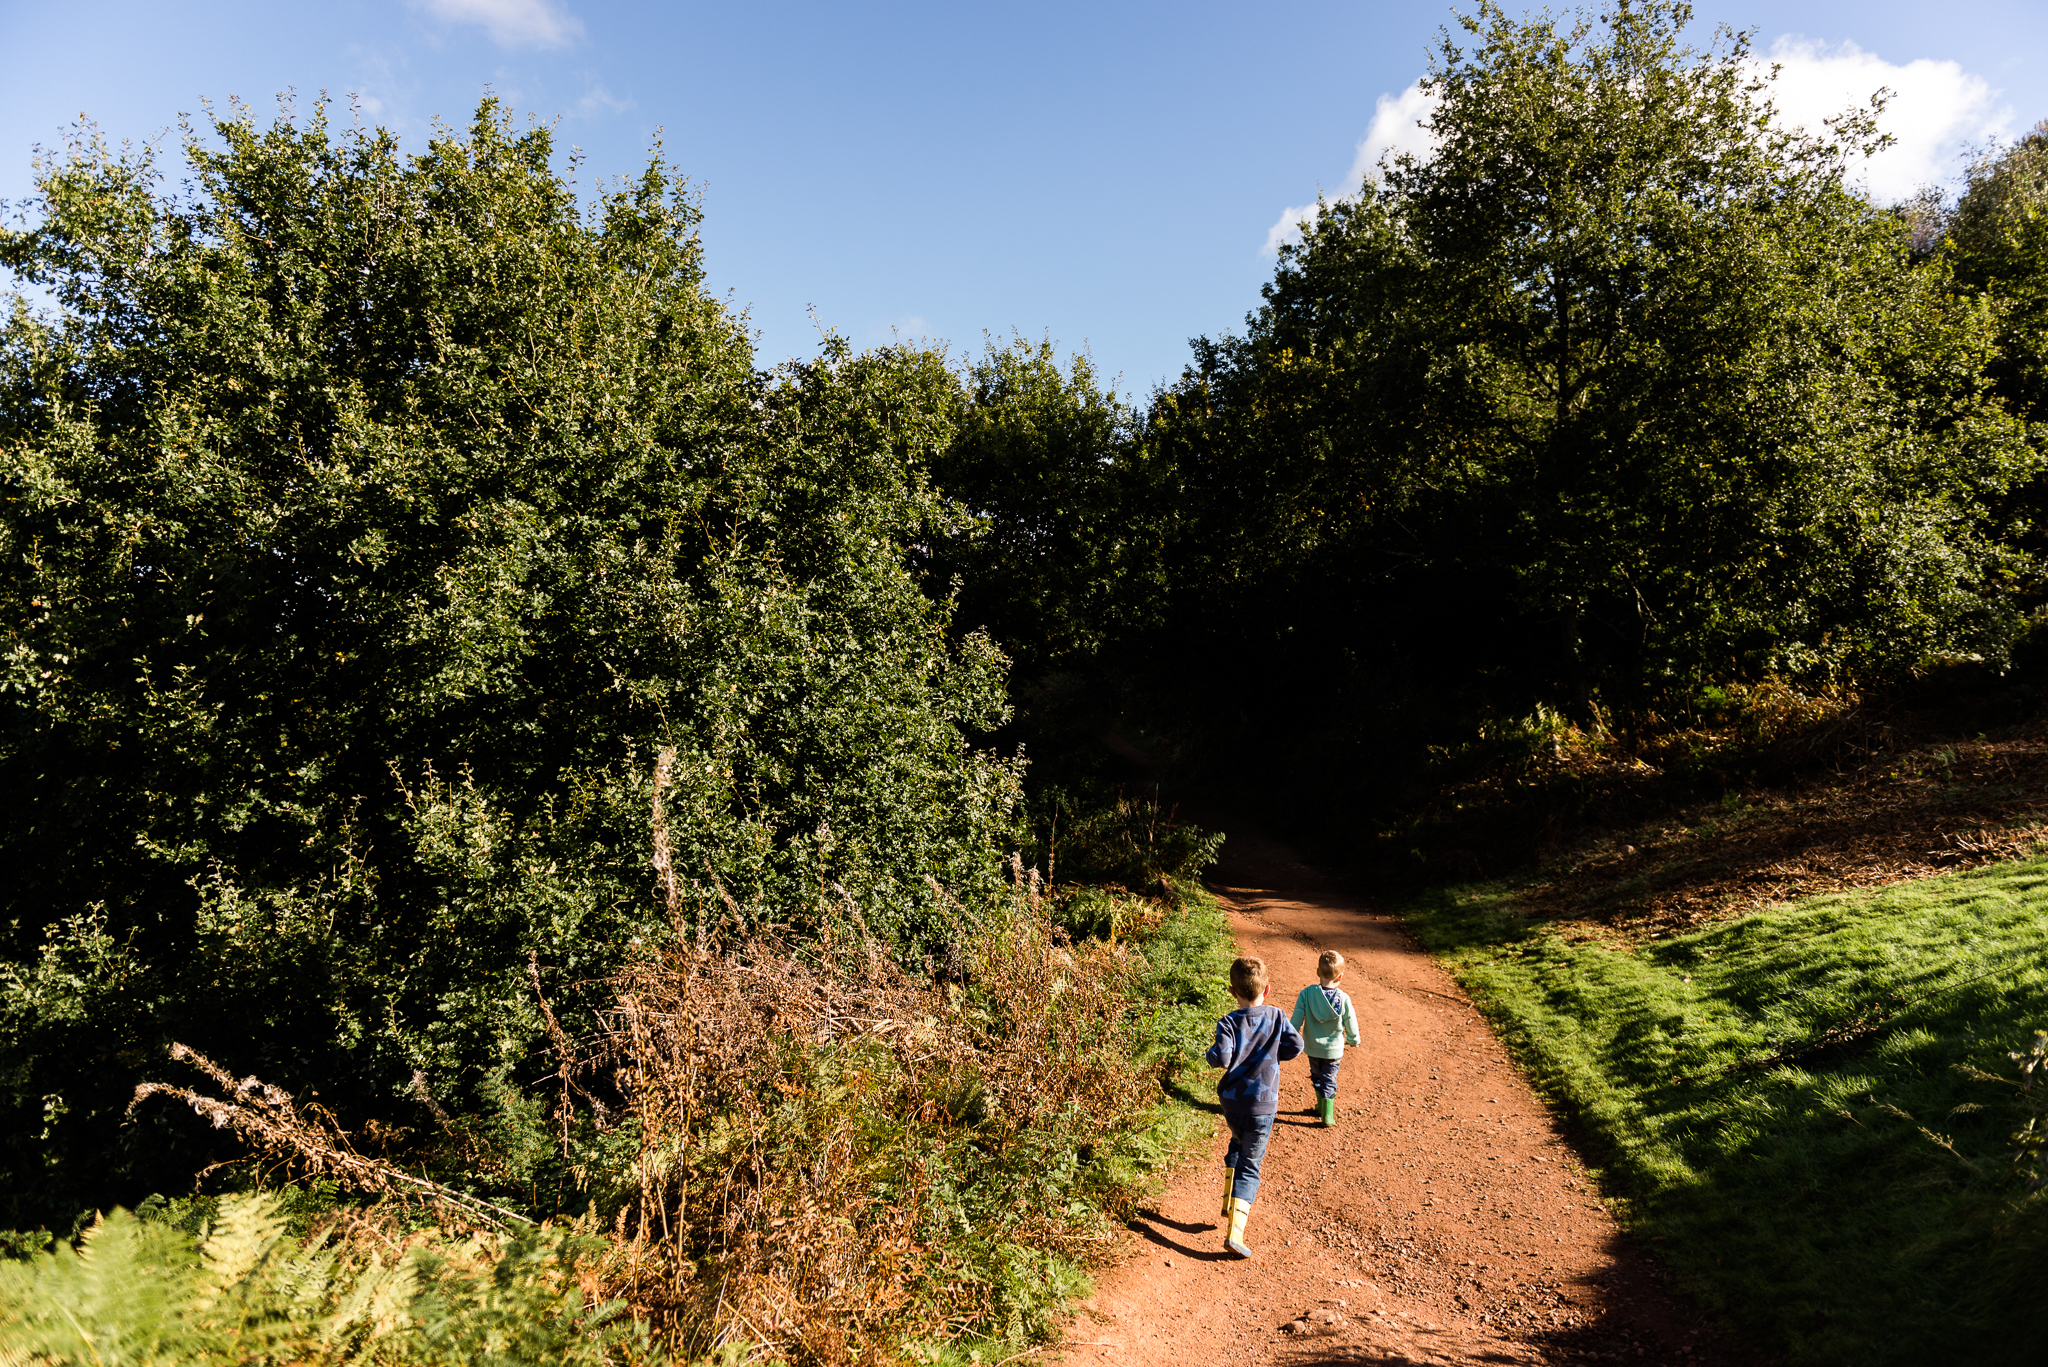 Documentary Family Photography at Clent Hills, Worcestershire Family Lifestyle Photography Woods Outdoors Trees Flying Kite - Jenny Harper-15.jpg